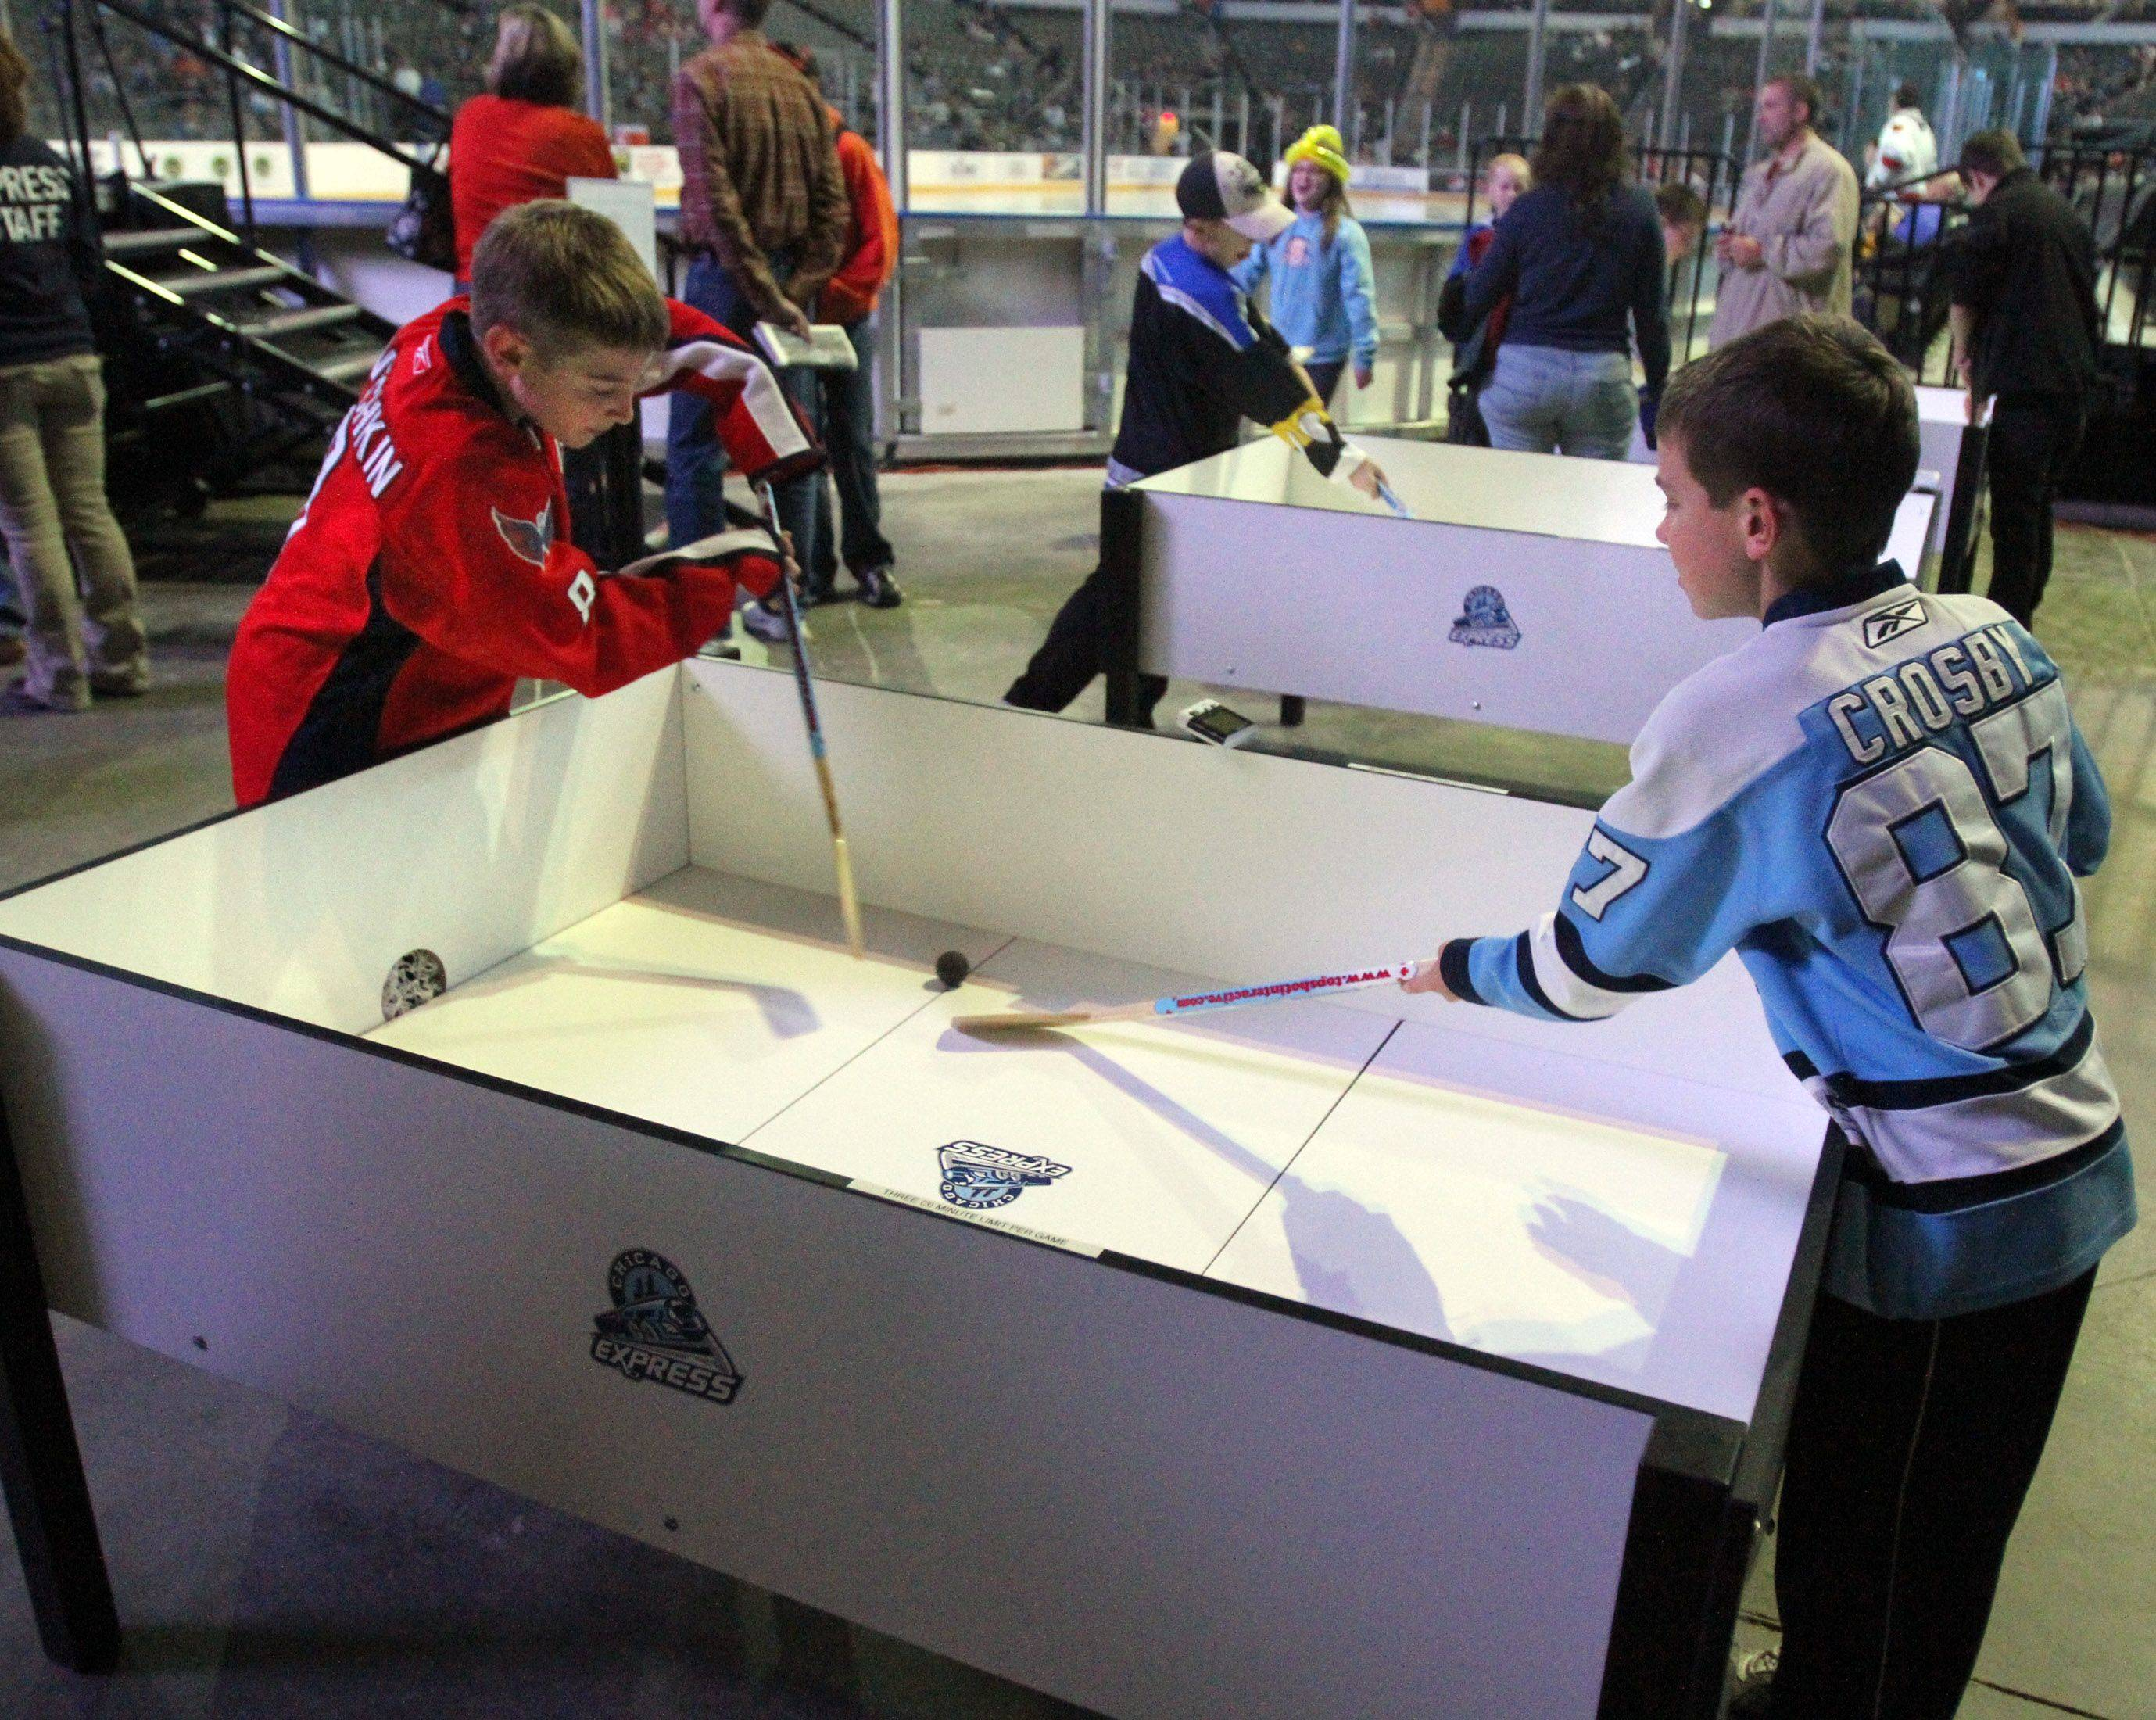 Ian McKittrick, 10, left, and his brother Cal, 8, of Geneva play one of many types of hockey games for kids at Chicago Express home opener in Hoffman Estates on Saturday, October 22nd.